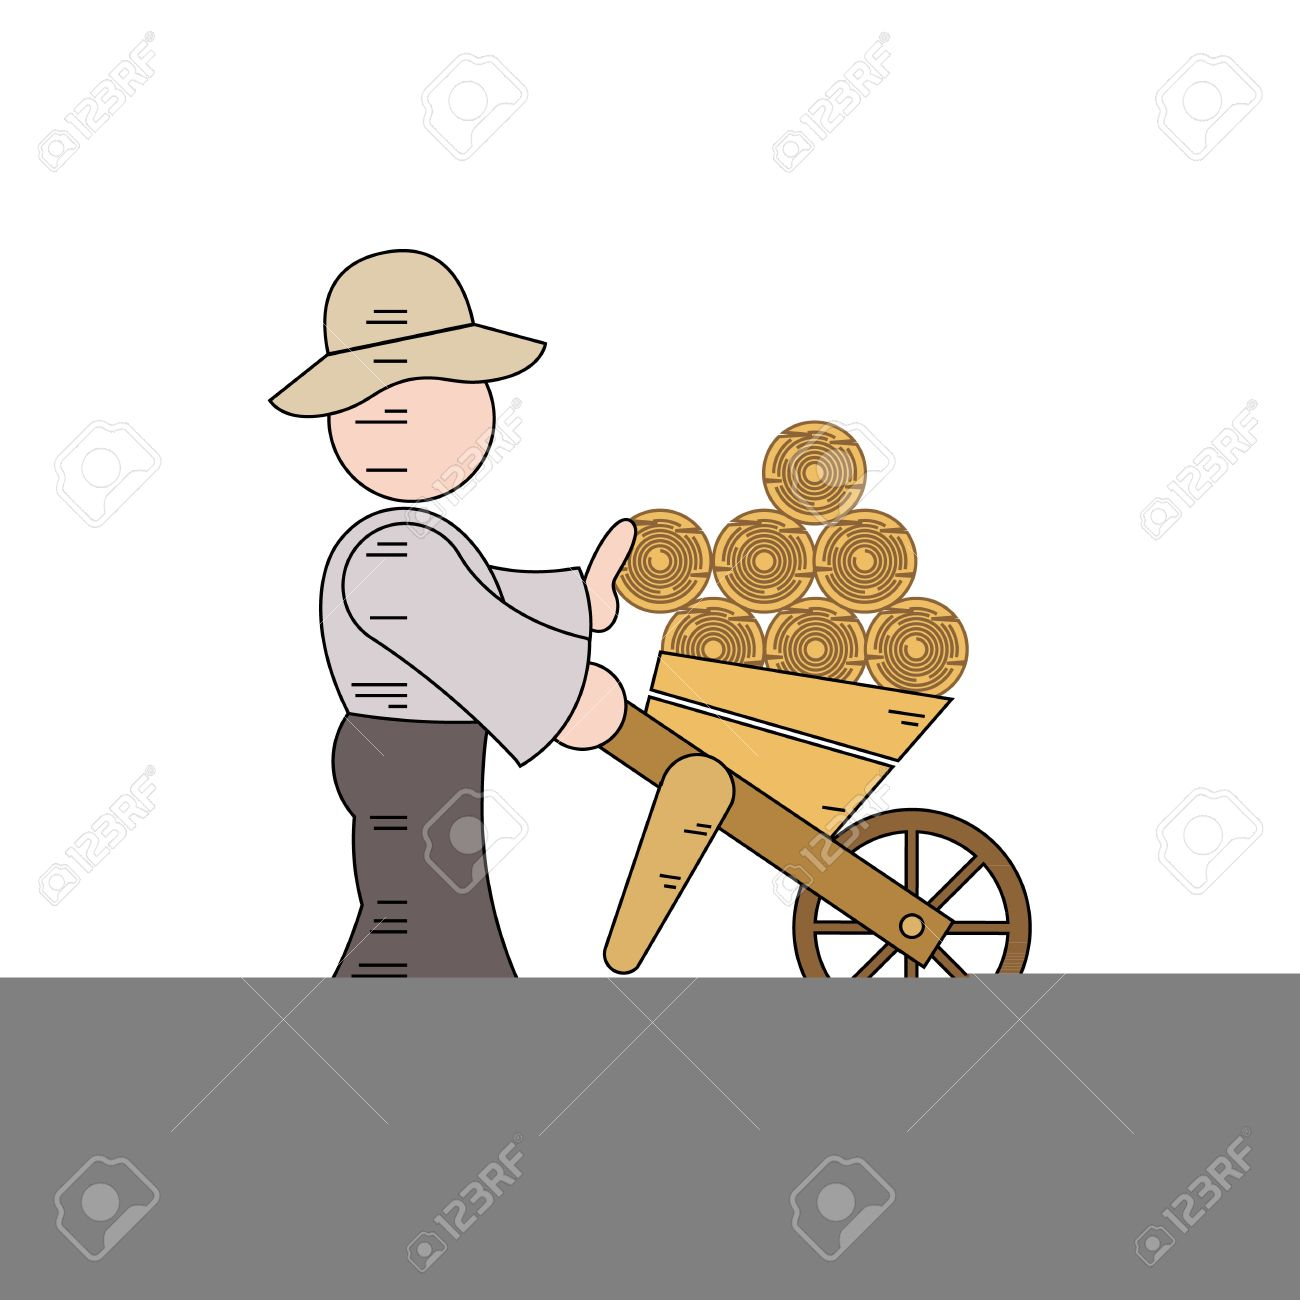 Cartoon Character Of A Woodcutter Carrying Logs Vector.